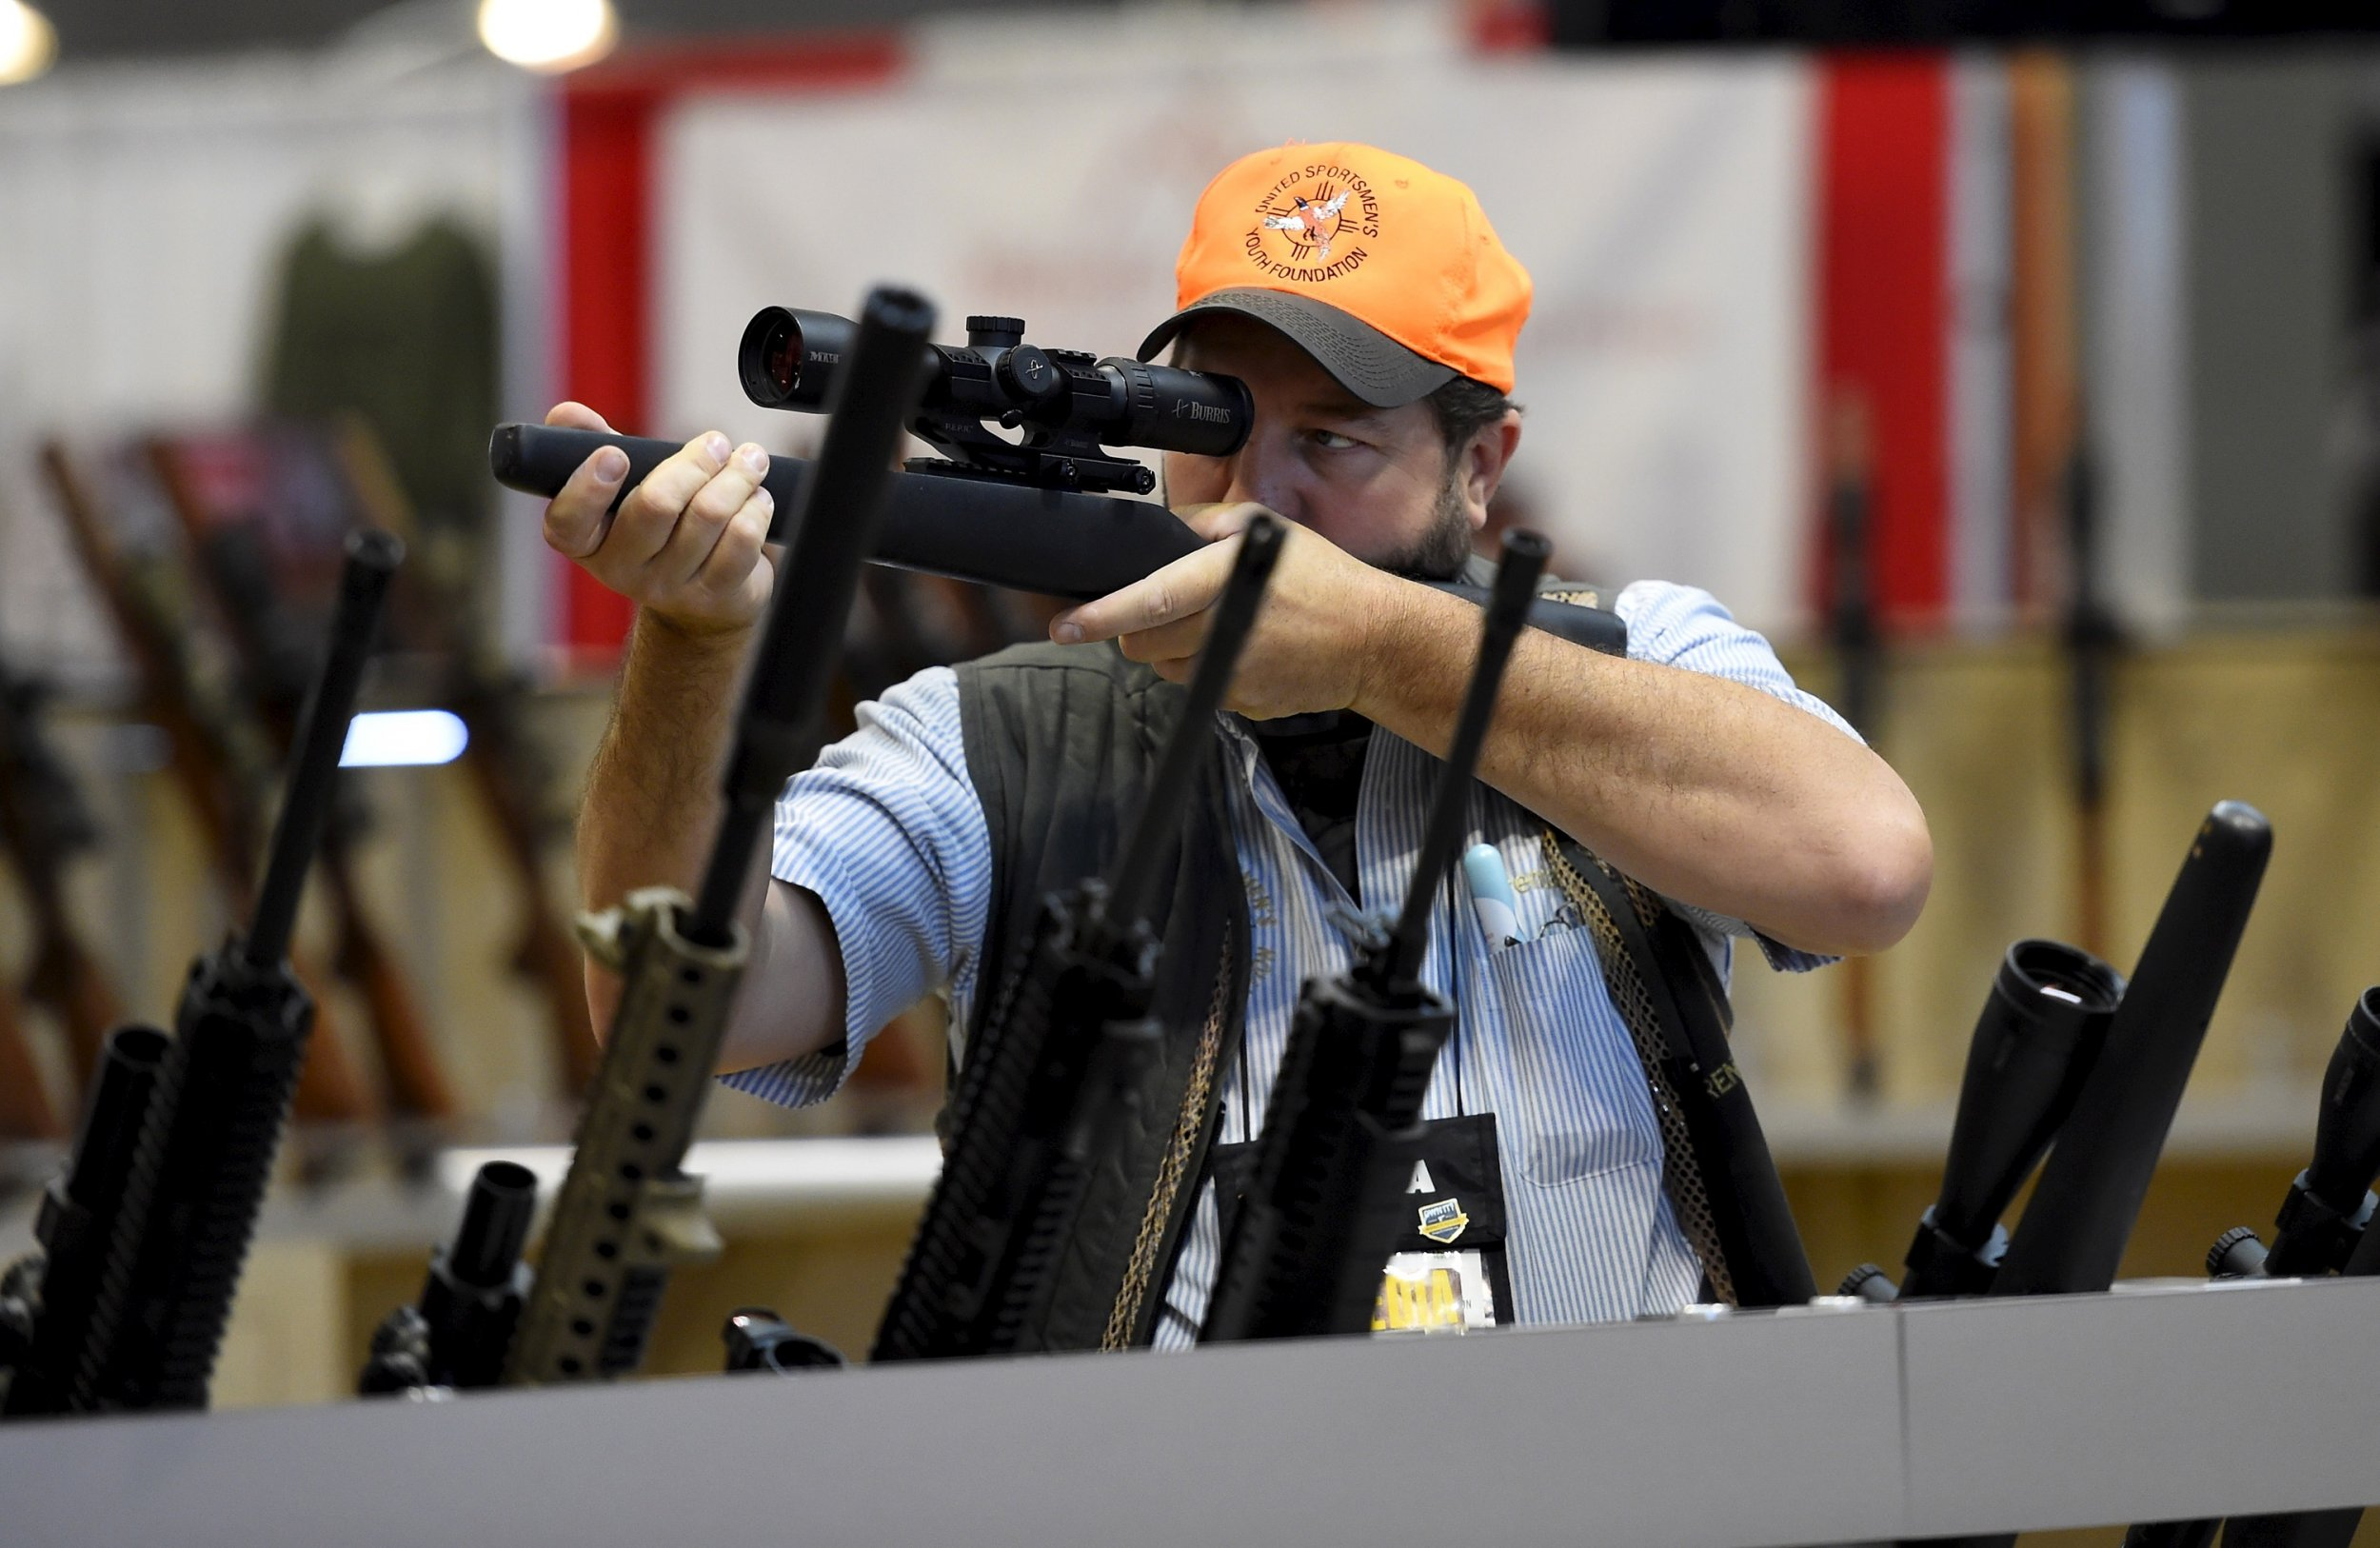 0805_NRA_01